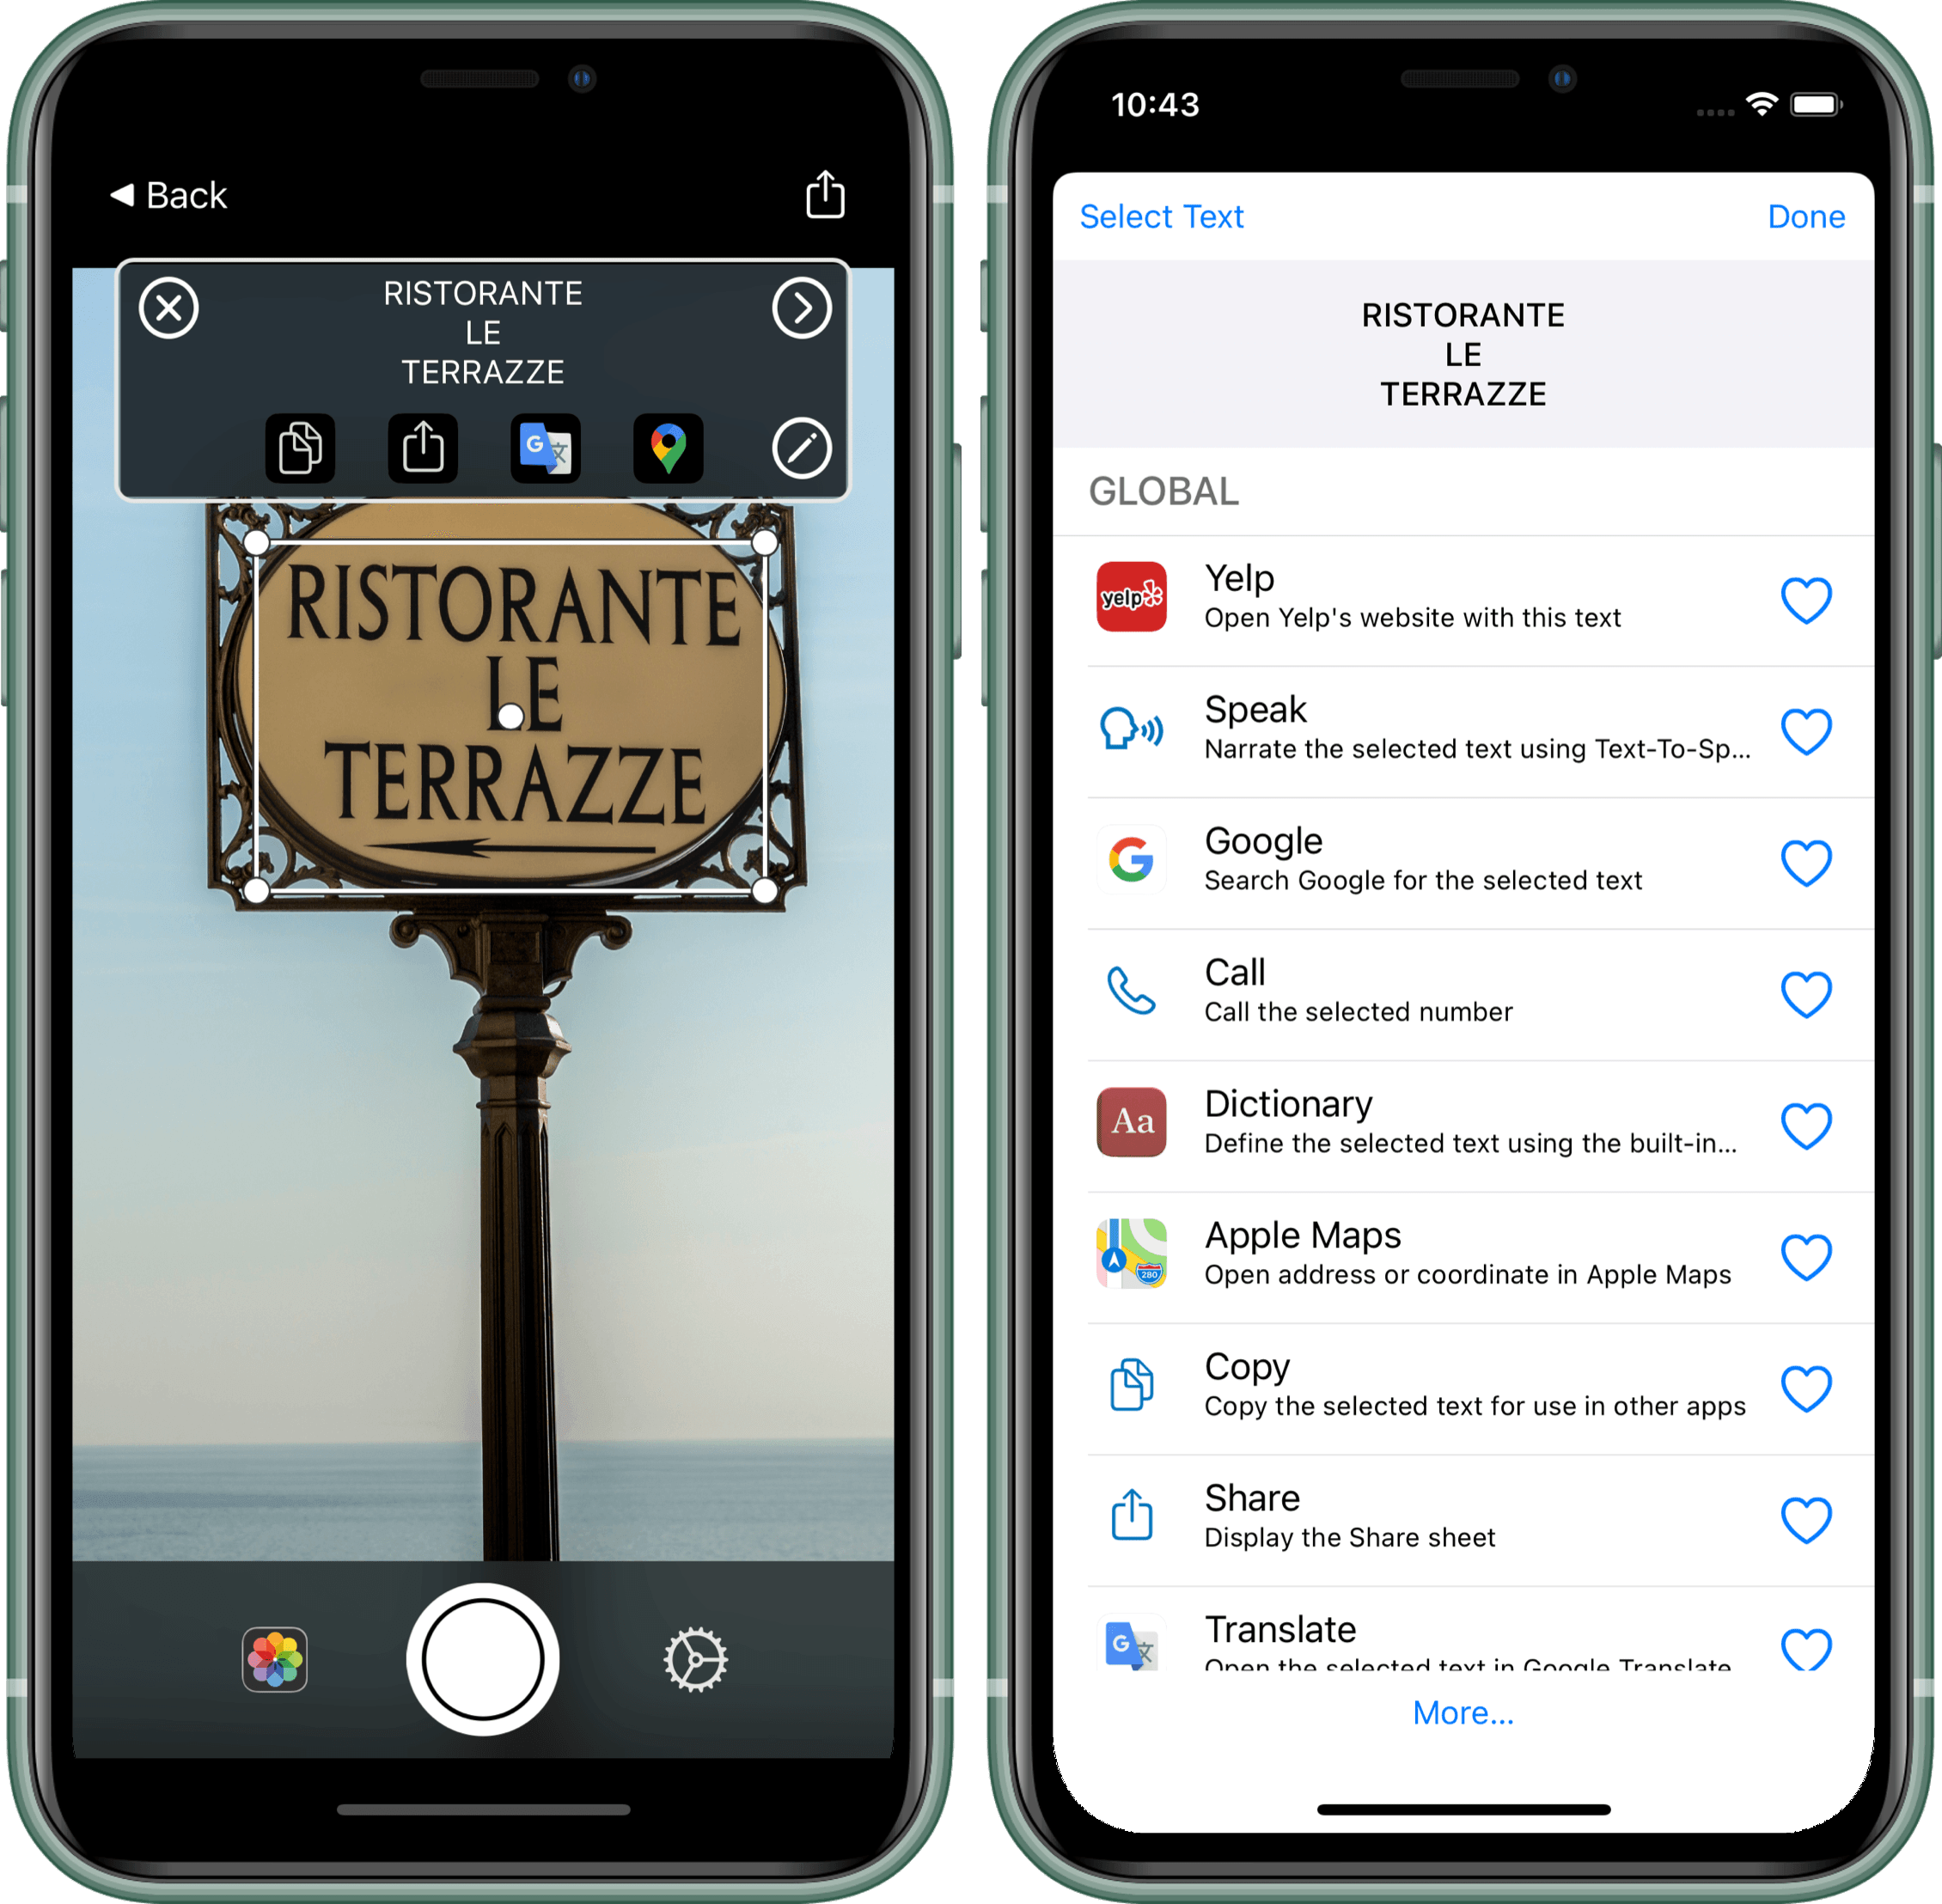 Gentlemen Coders Launches LiveScan for iOS and Mac, Making Text Detection in Images Quick and Easy